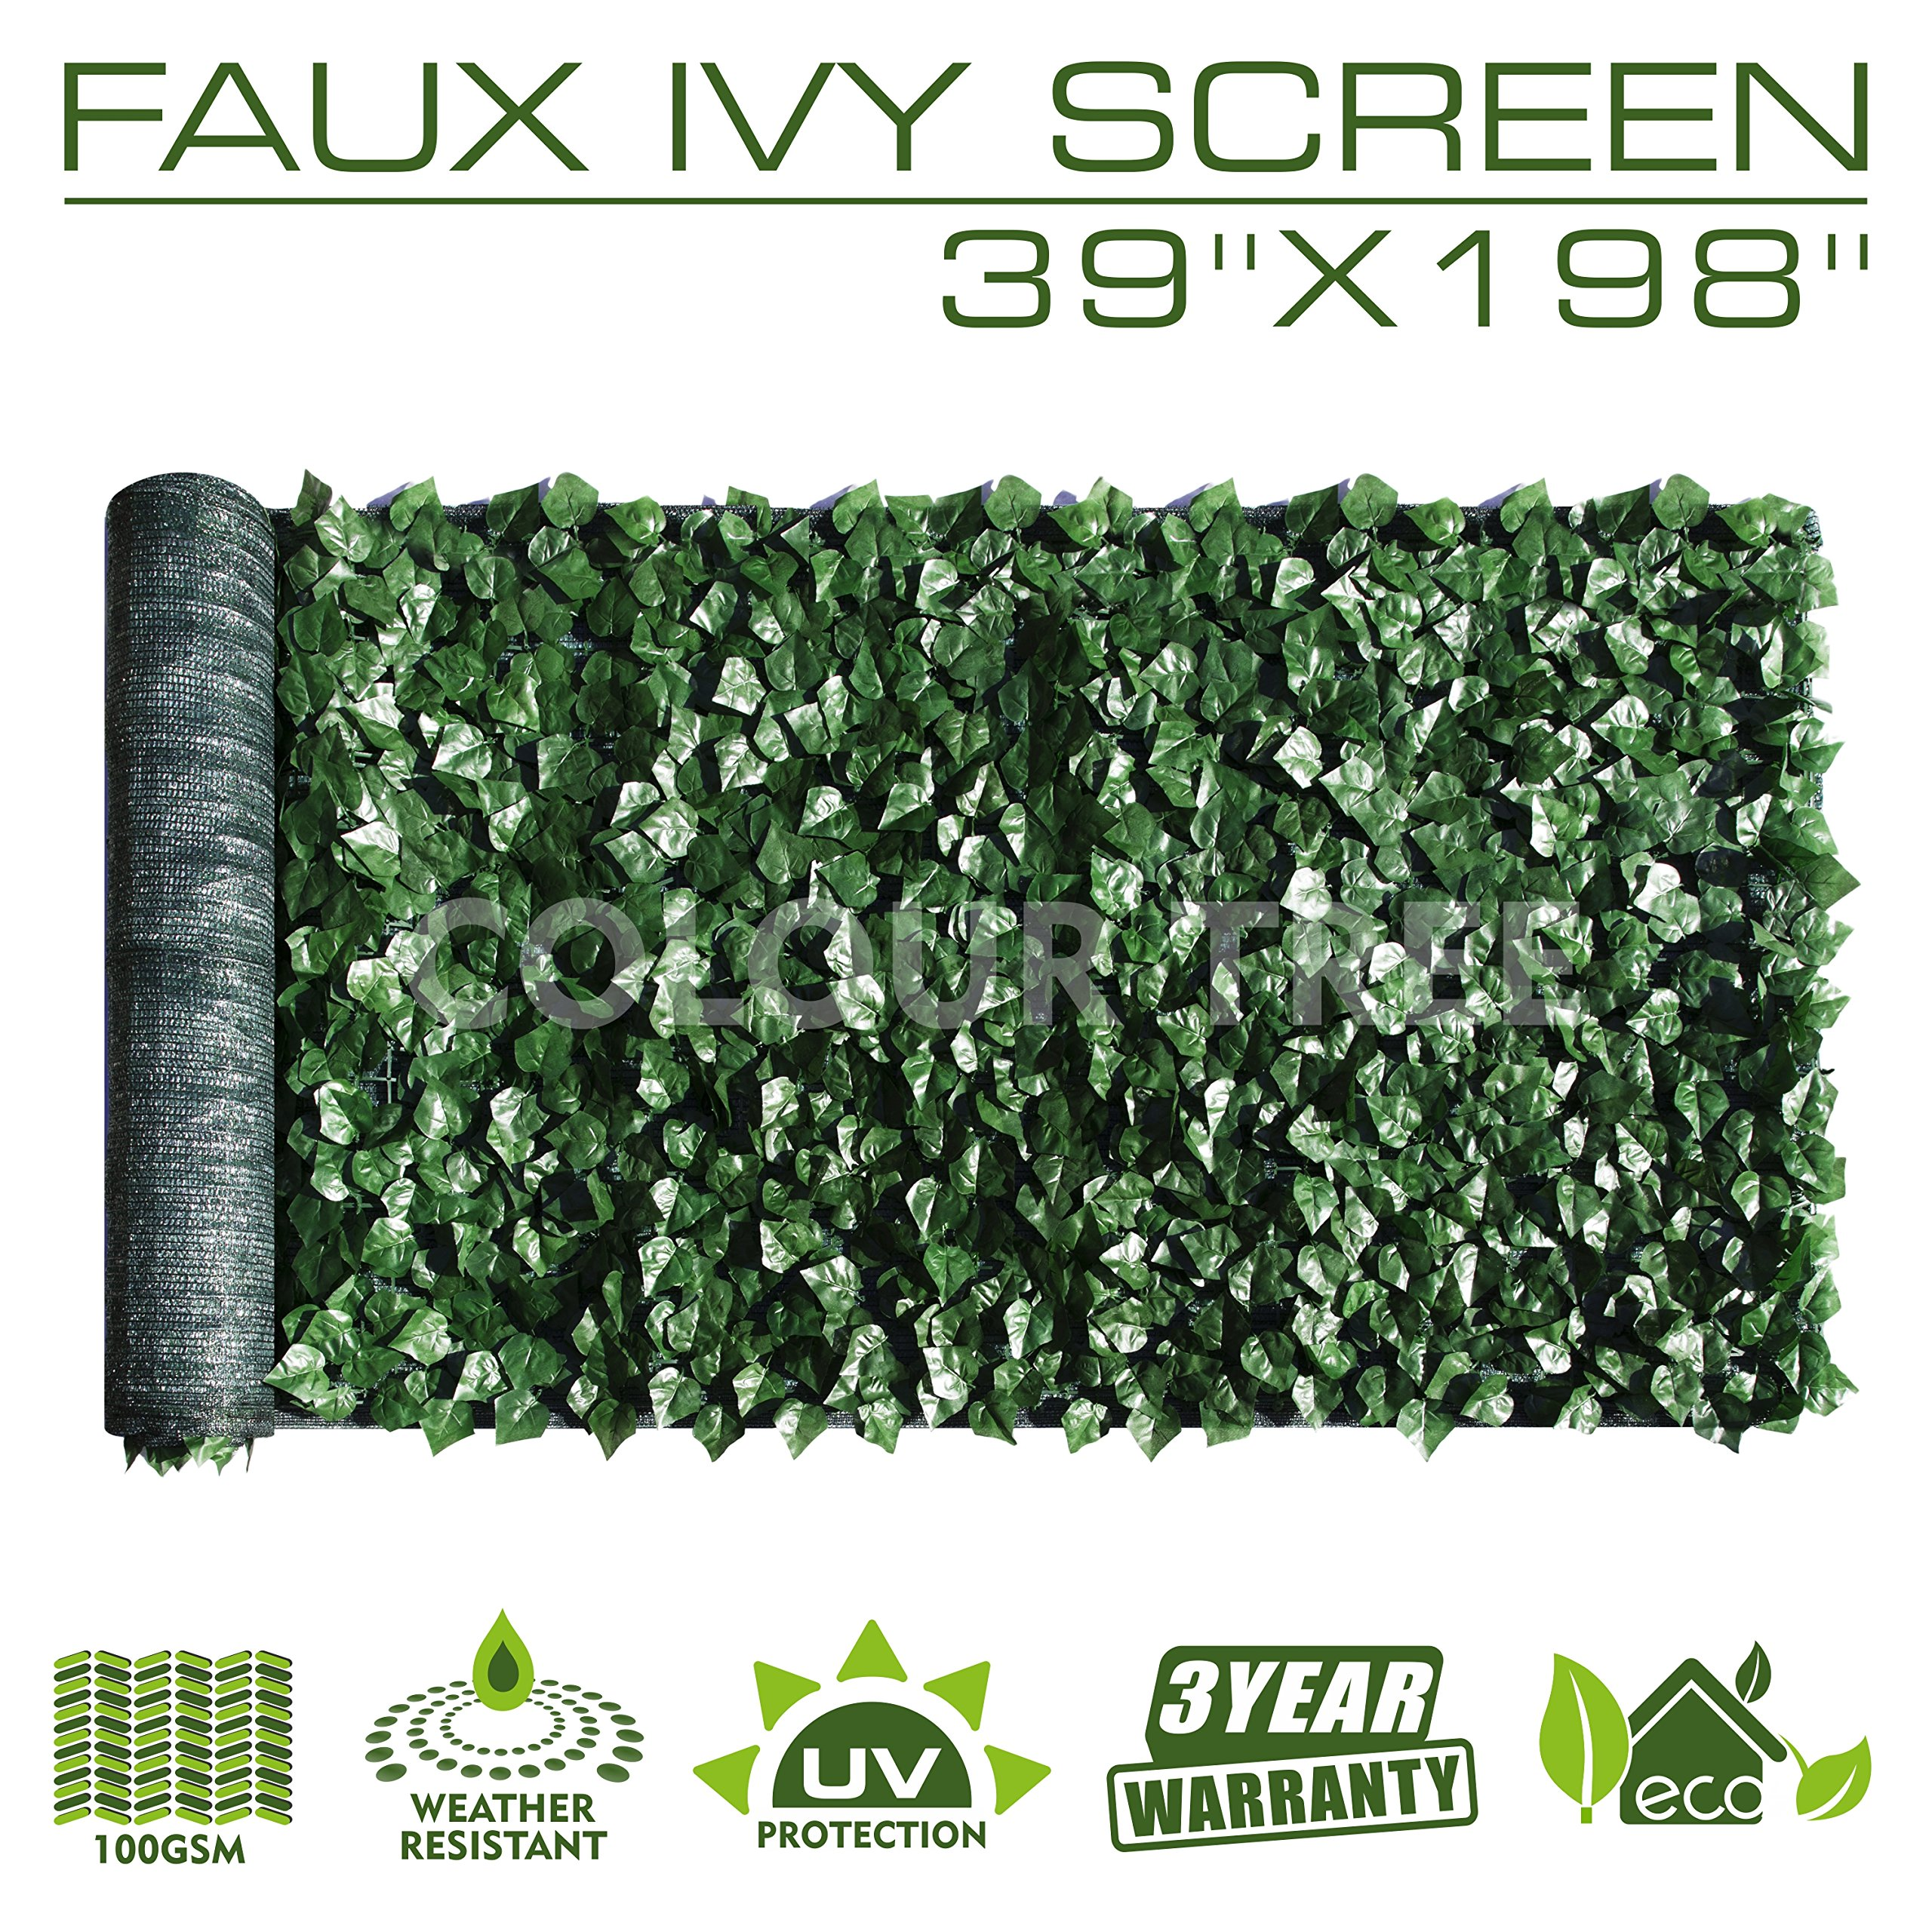 ColourTree Artificial Hedges Faux Ivy Leaves Fence Privacy Screen Panels  Decorative Trellis - Mesh Backing - 3 Years Full Warranty (39'' x 198'')